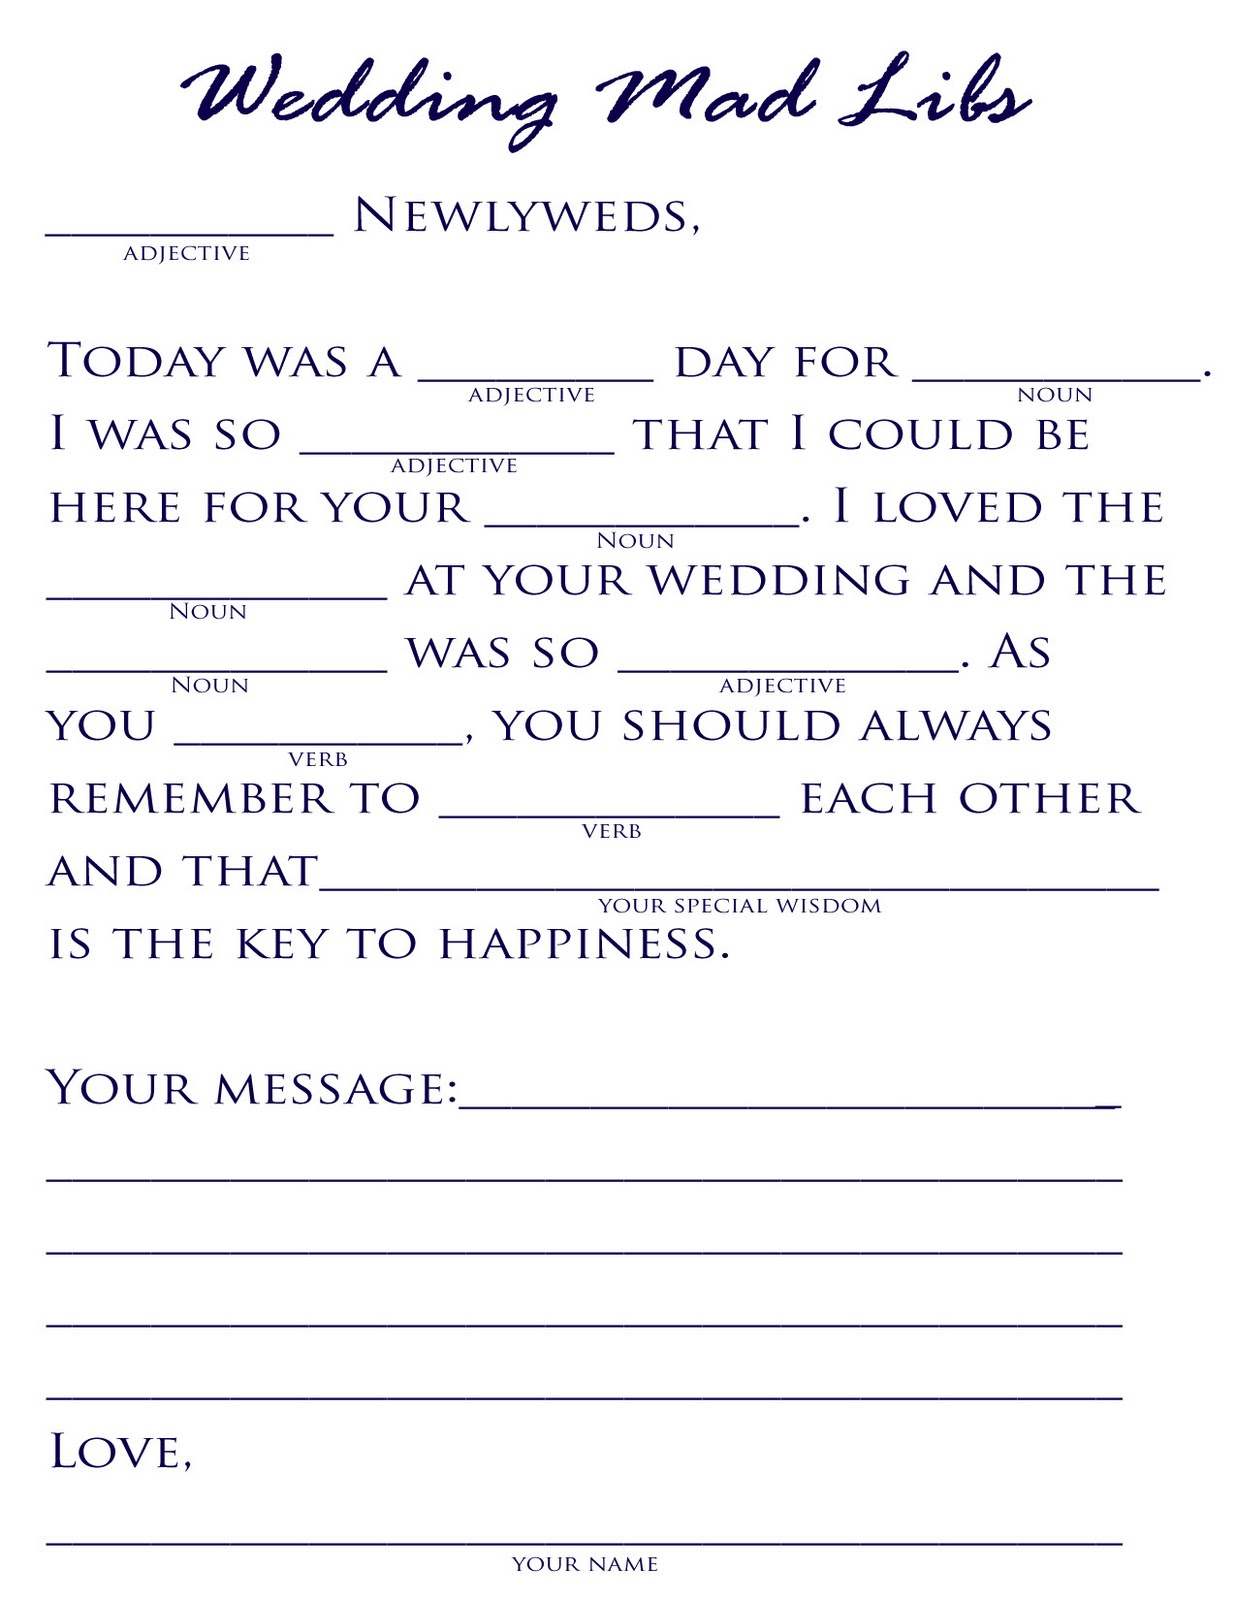 Influential image within free printable wedding mad libs